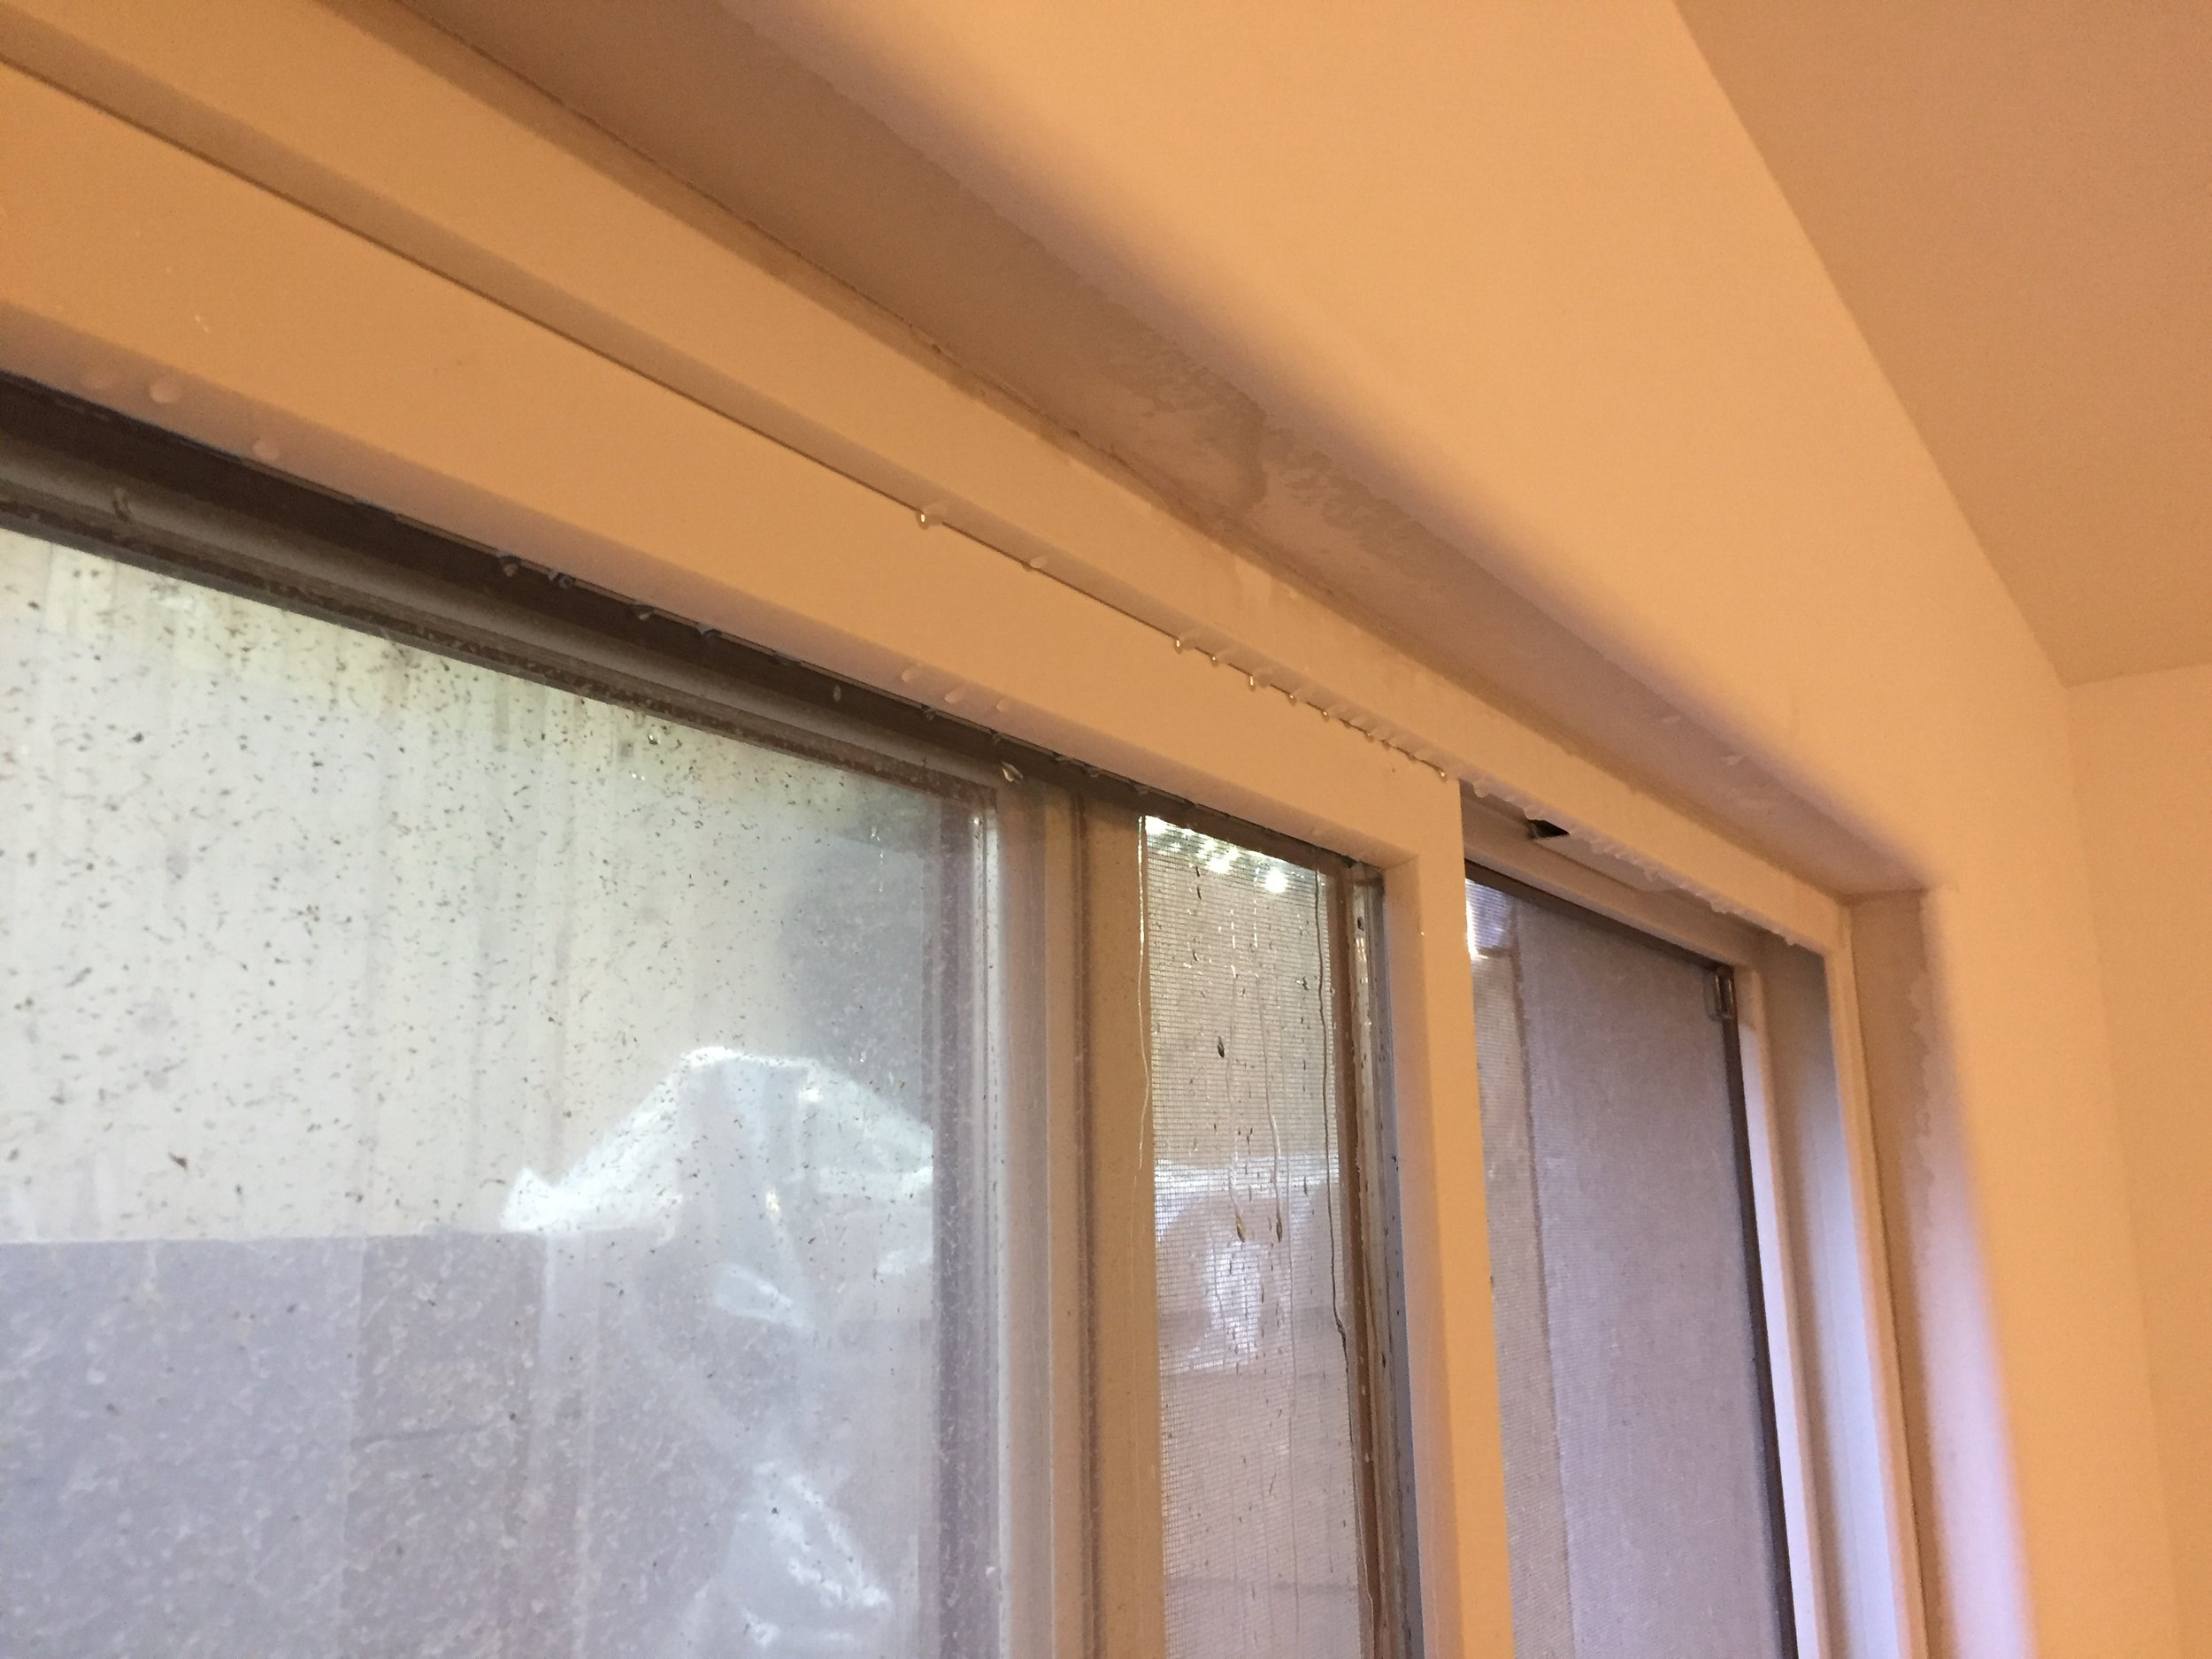 Water dripping from the top of the window. Where is it coming from?